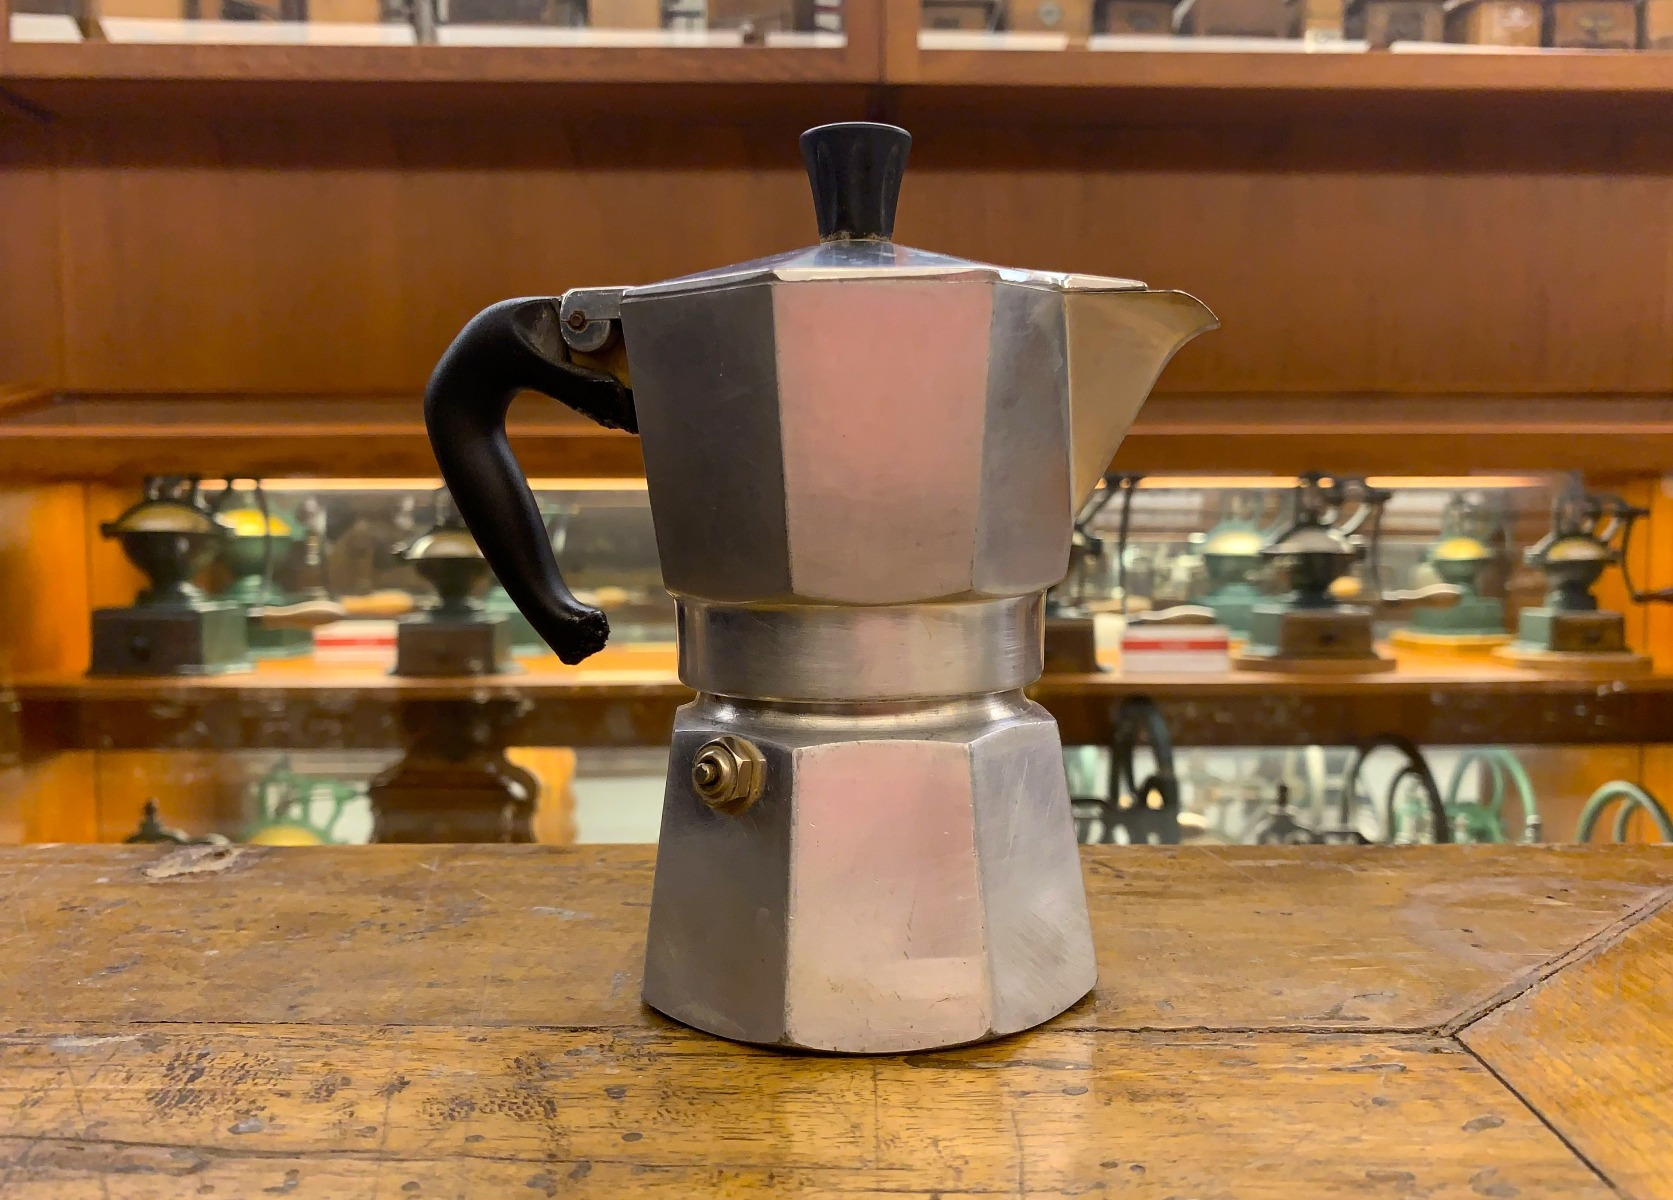 The history of the world through the coffee maker